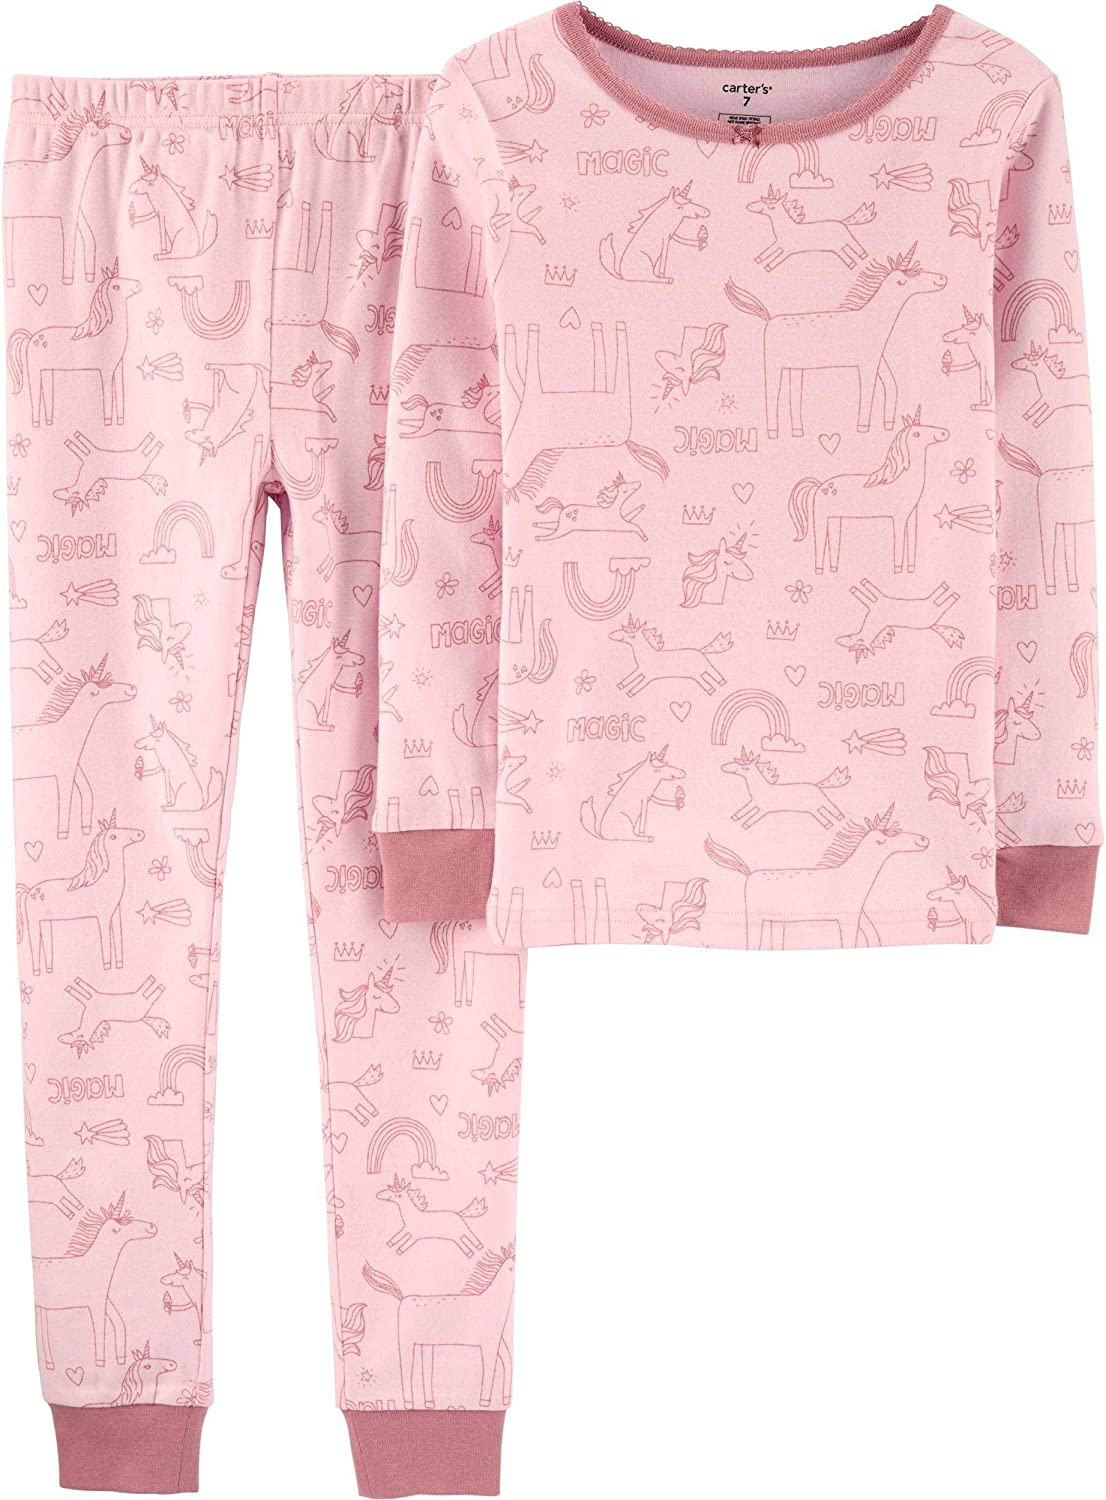 Toddler//Kid Carters Little Girls 2 Piece PJ Set